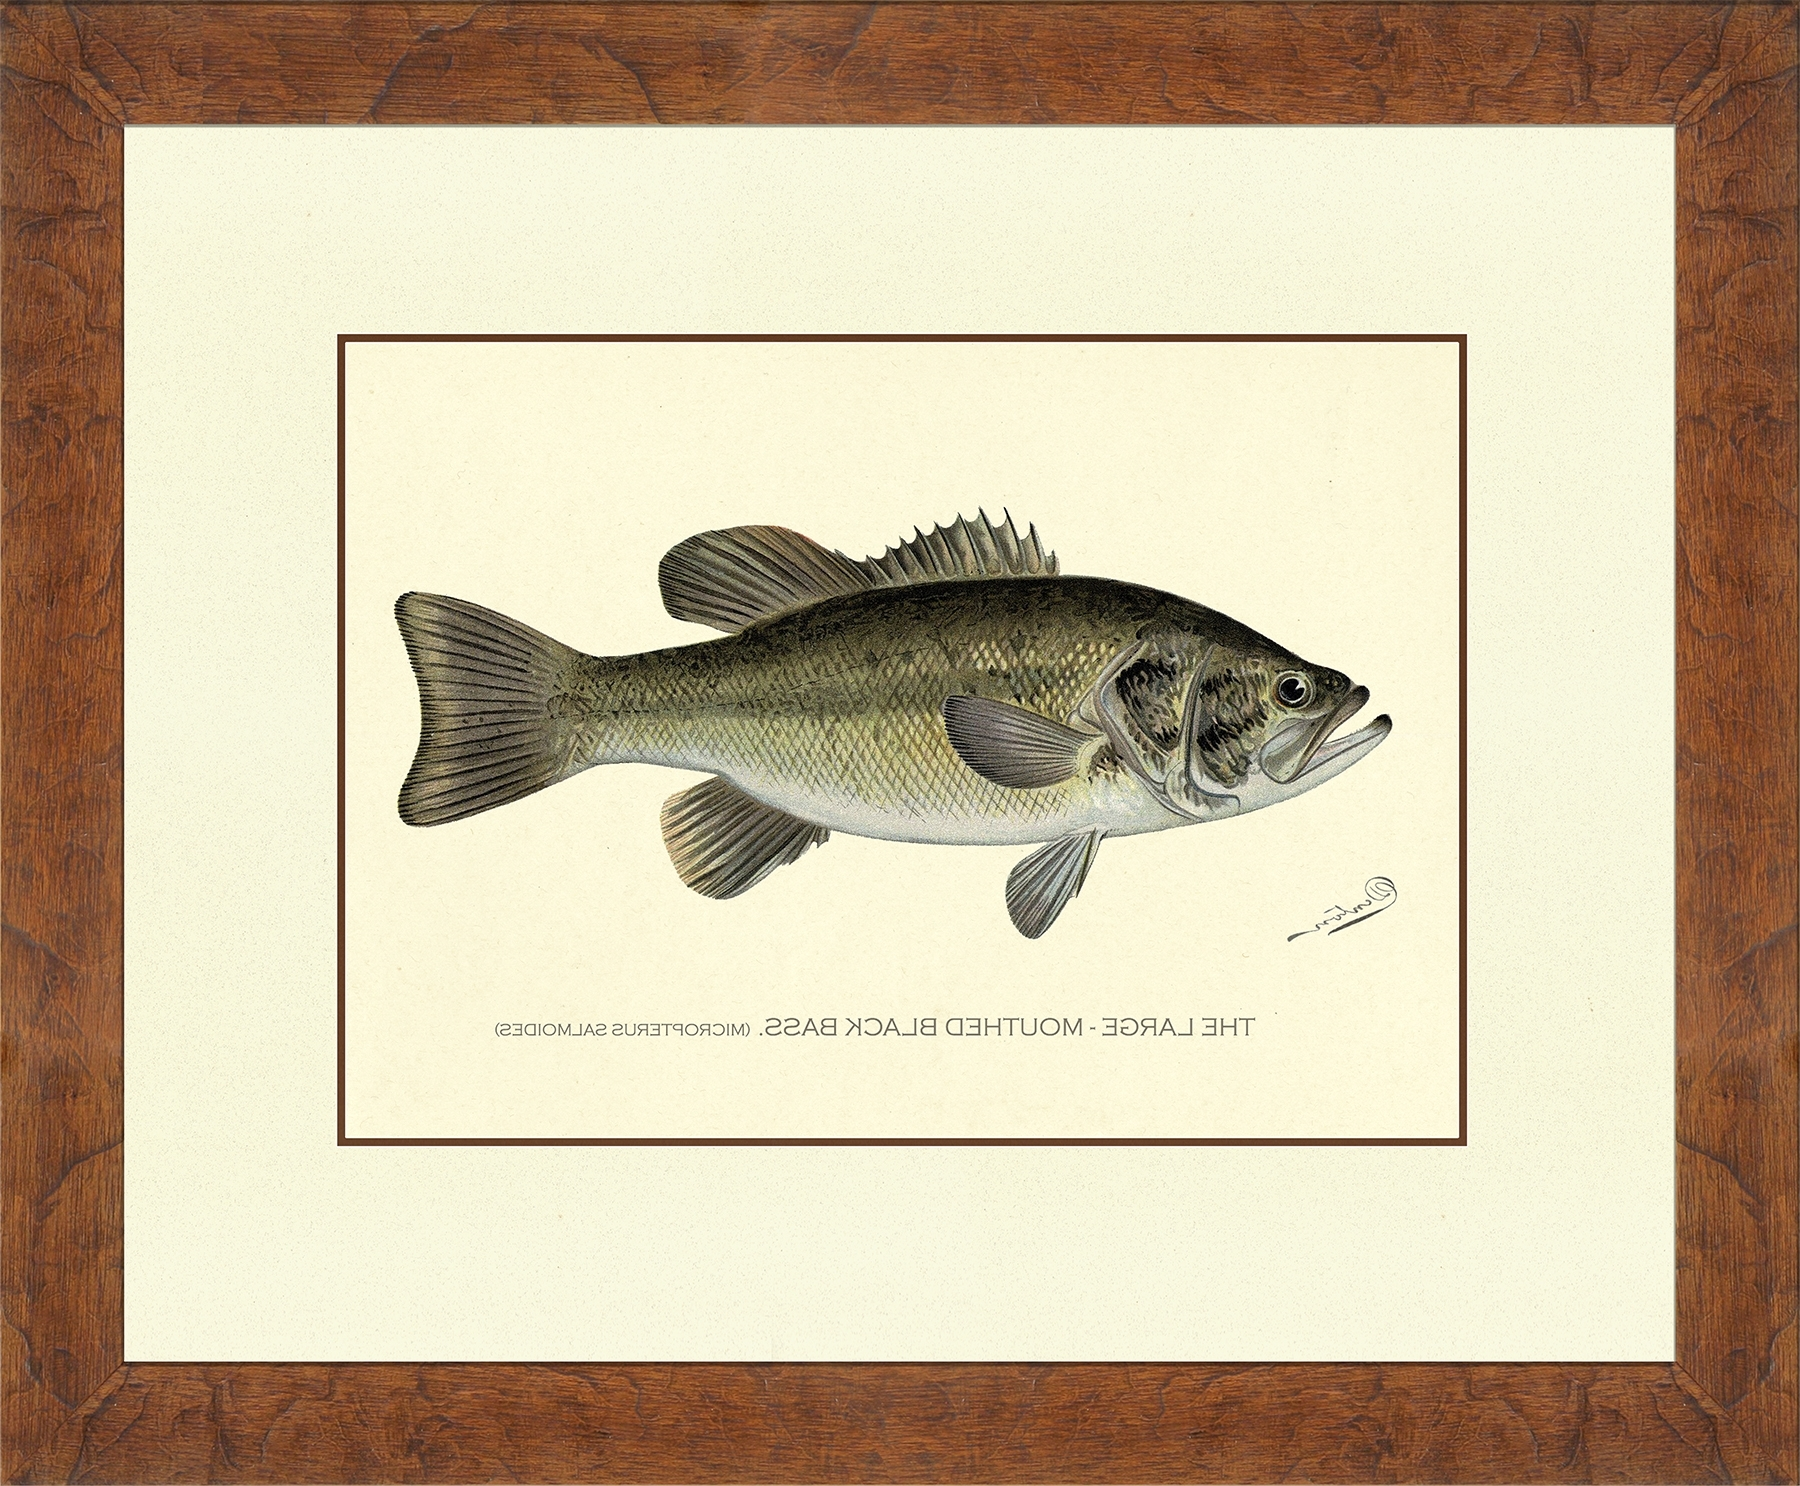 Newest Denton Fish : Nostalgia Fine Art – Antique Prints – Giclee Prints Within Bass Framed Art Prints (View 12 of 15)